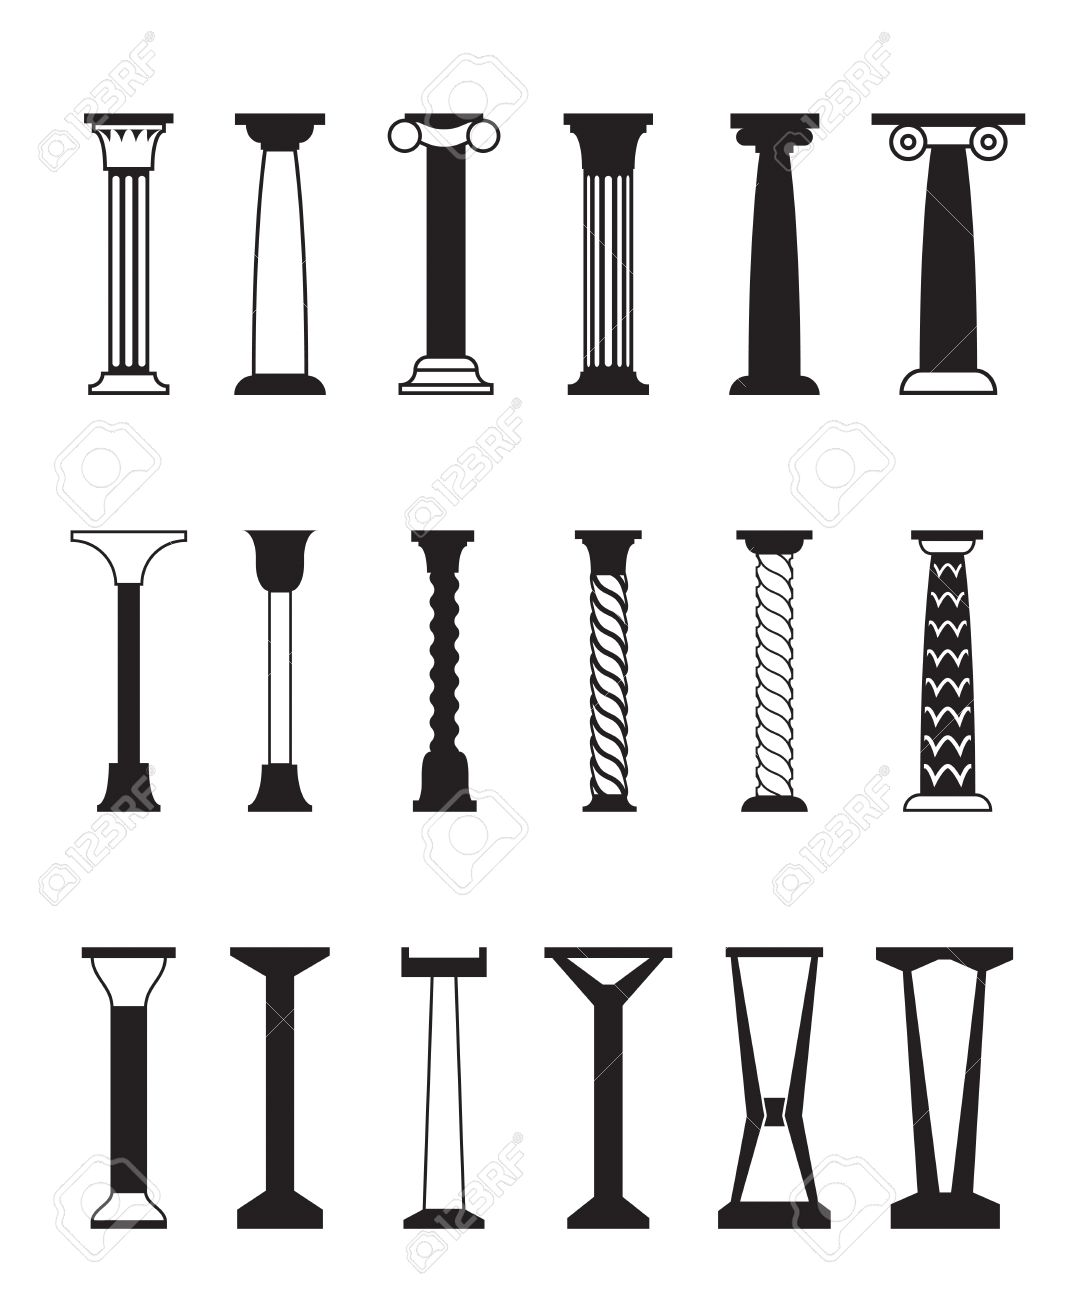 Different Types Of Columns - Vector Illustration Royalty Free ...